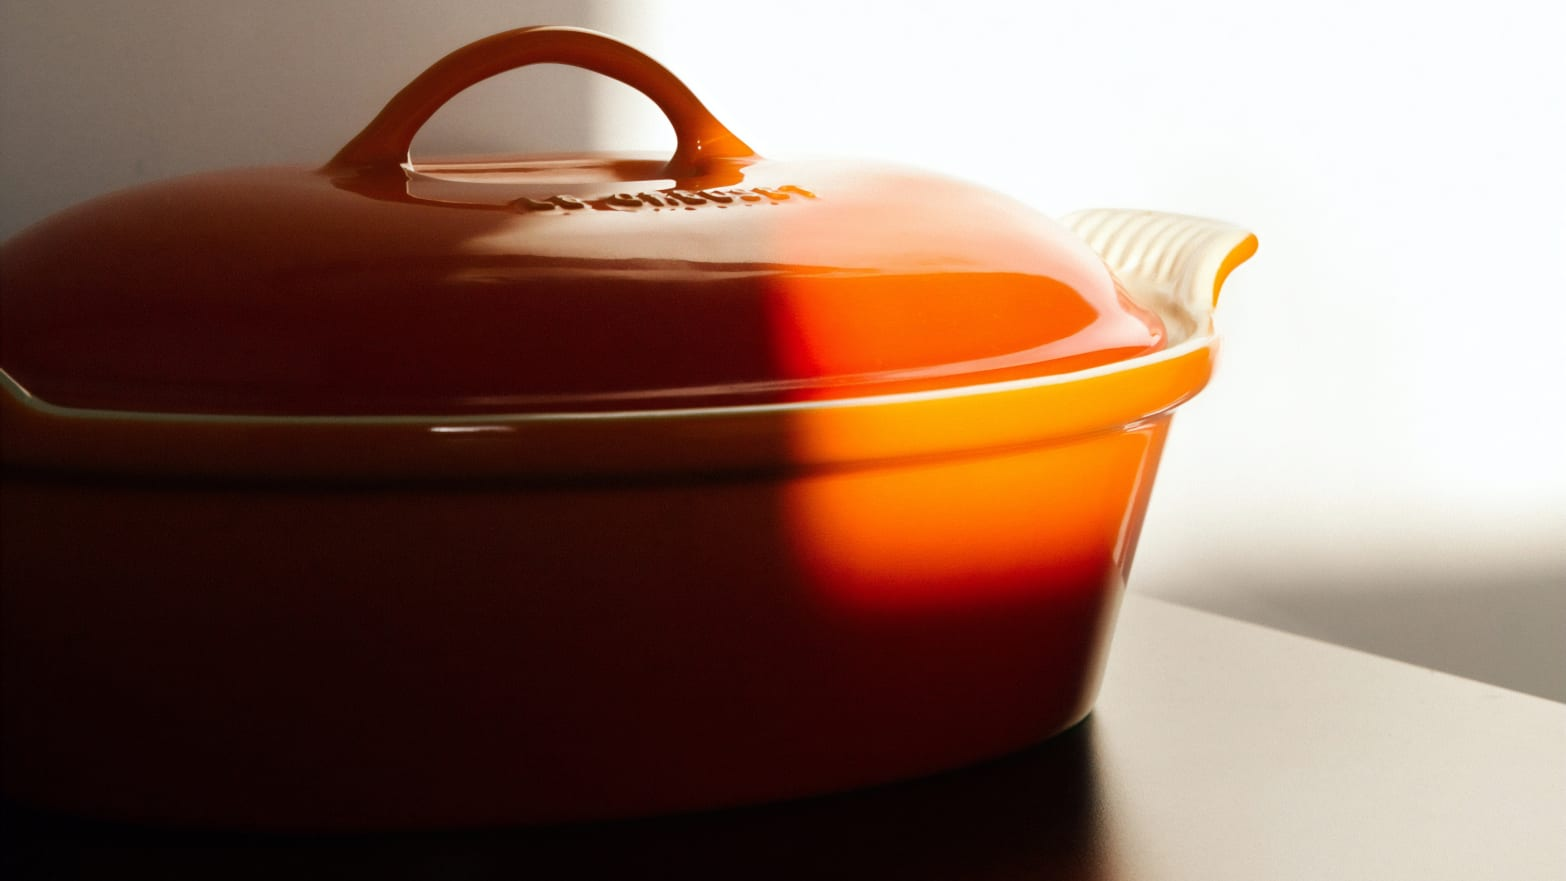 Le Creuset, Great Jones, Milo, and More Dutch Ovens To Own Right Now